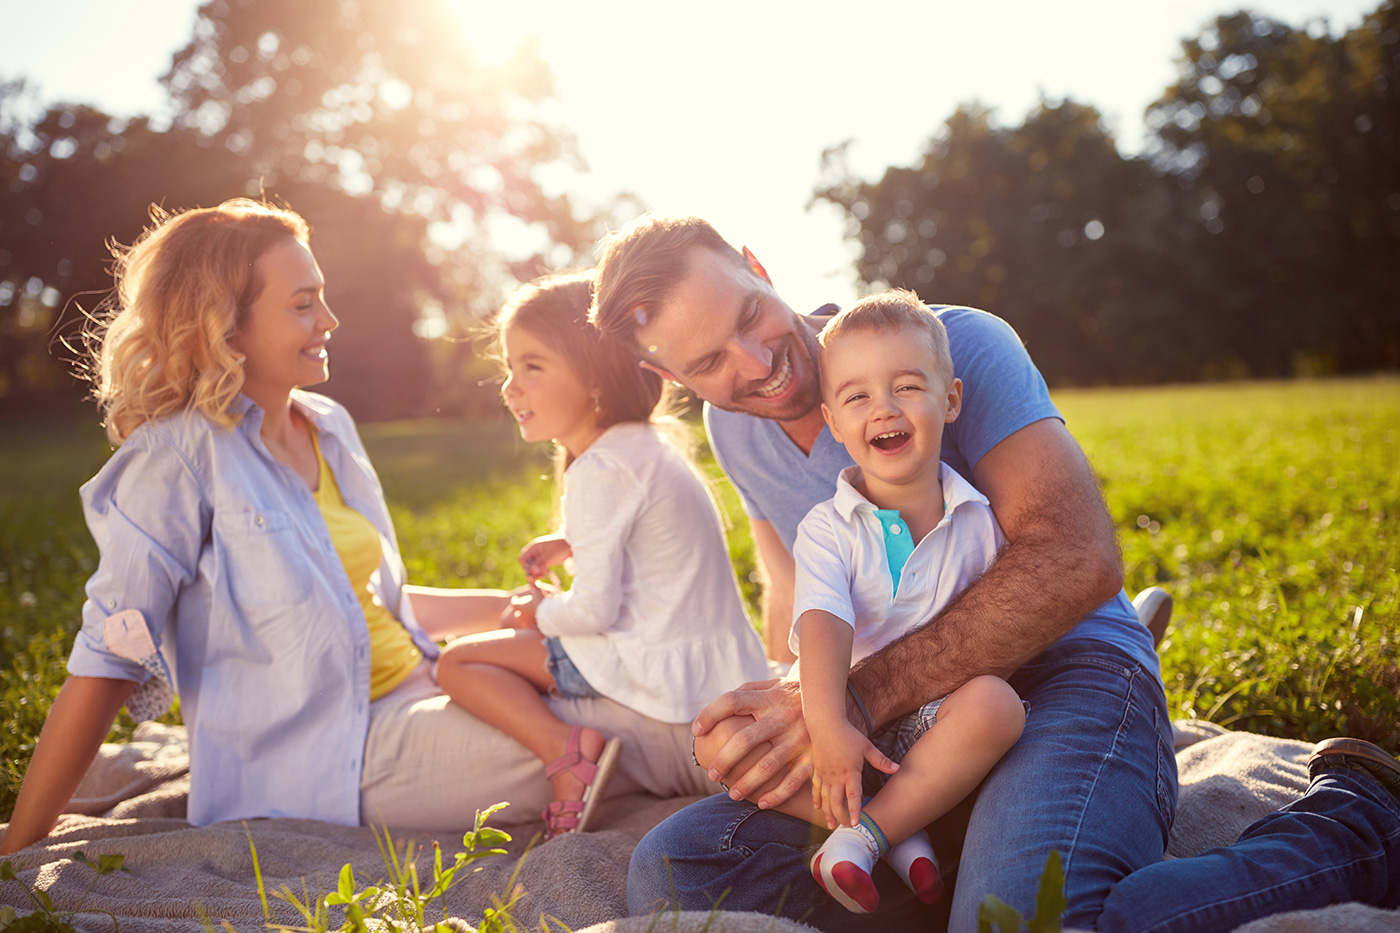 Platte River Medical Clinic is here for your family's health needs.